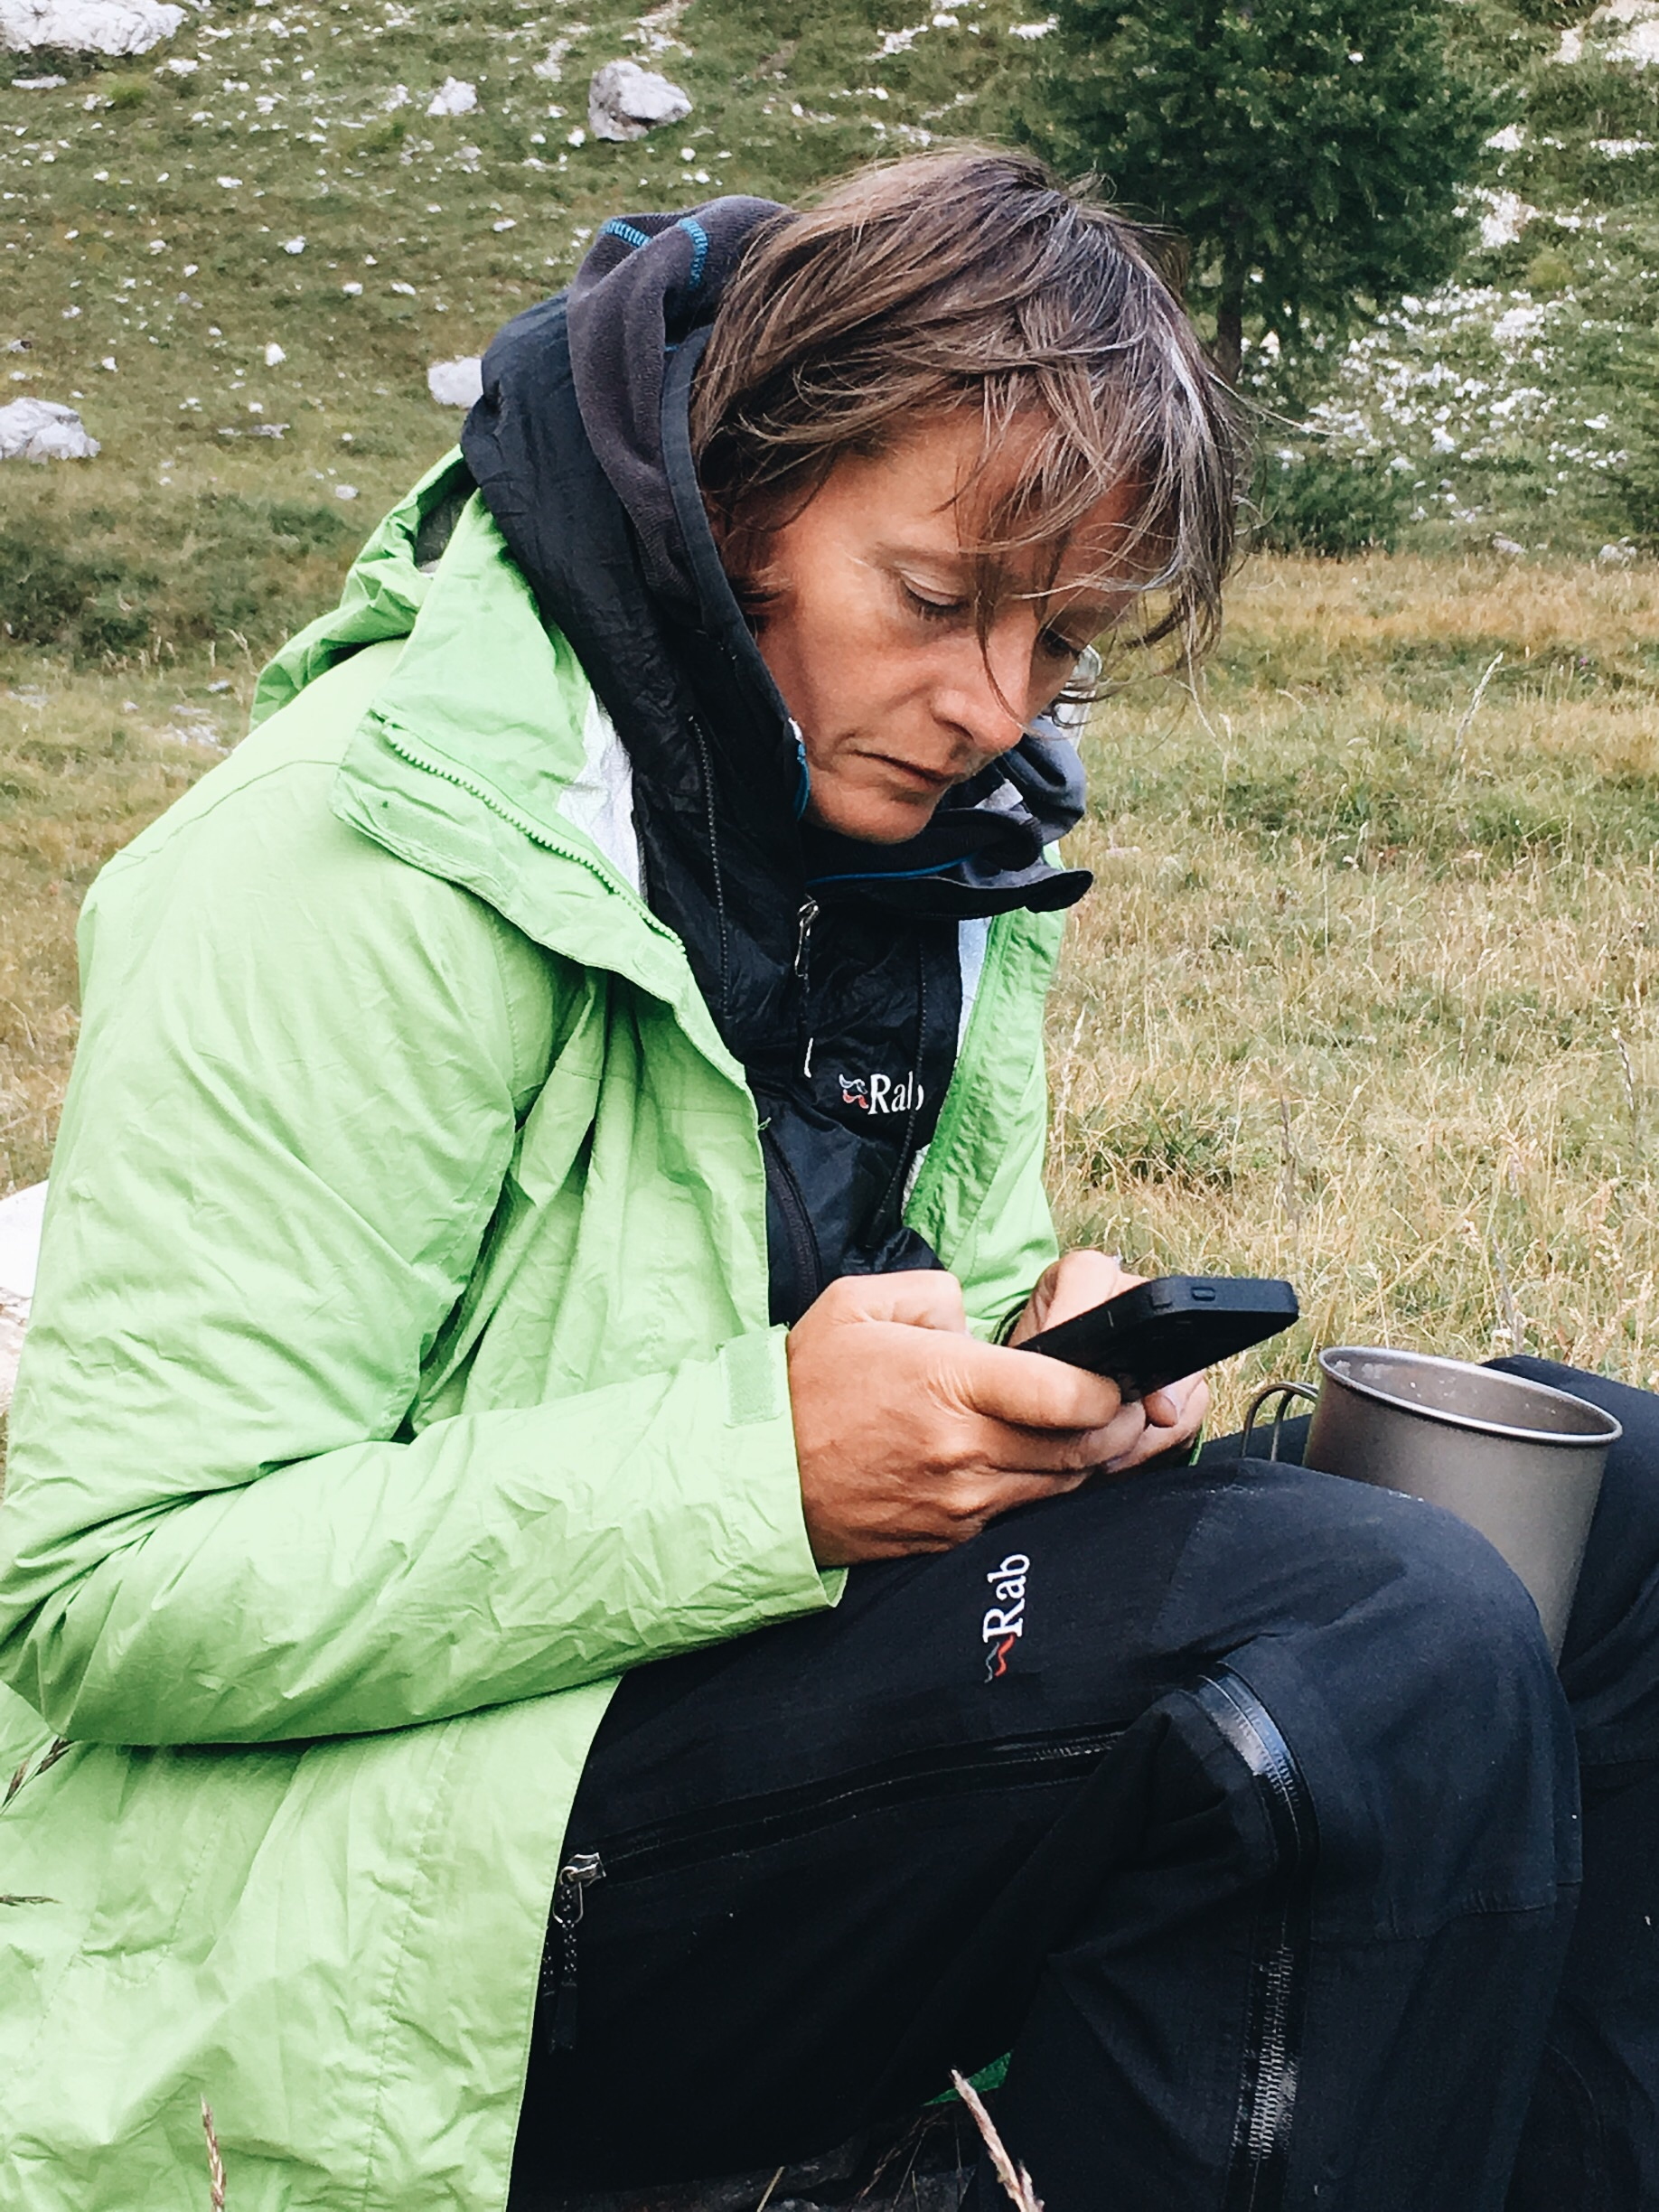 Old Lady Vlogger hard at work. Sponsored by RAB!